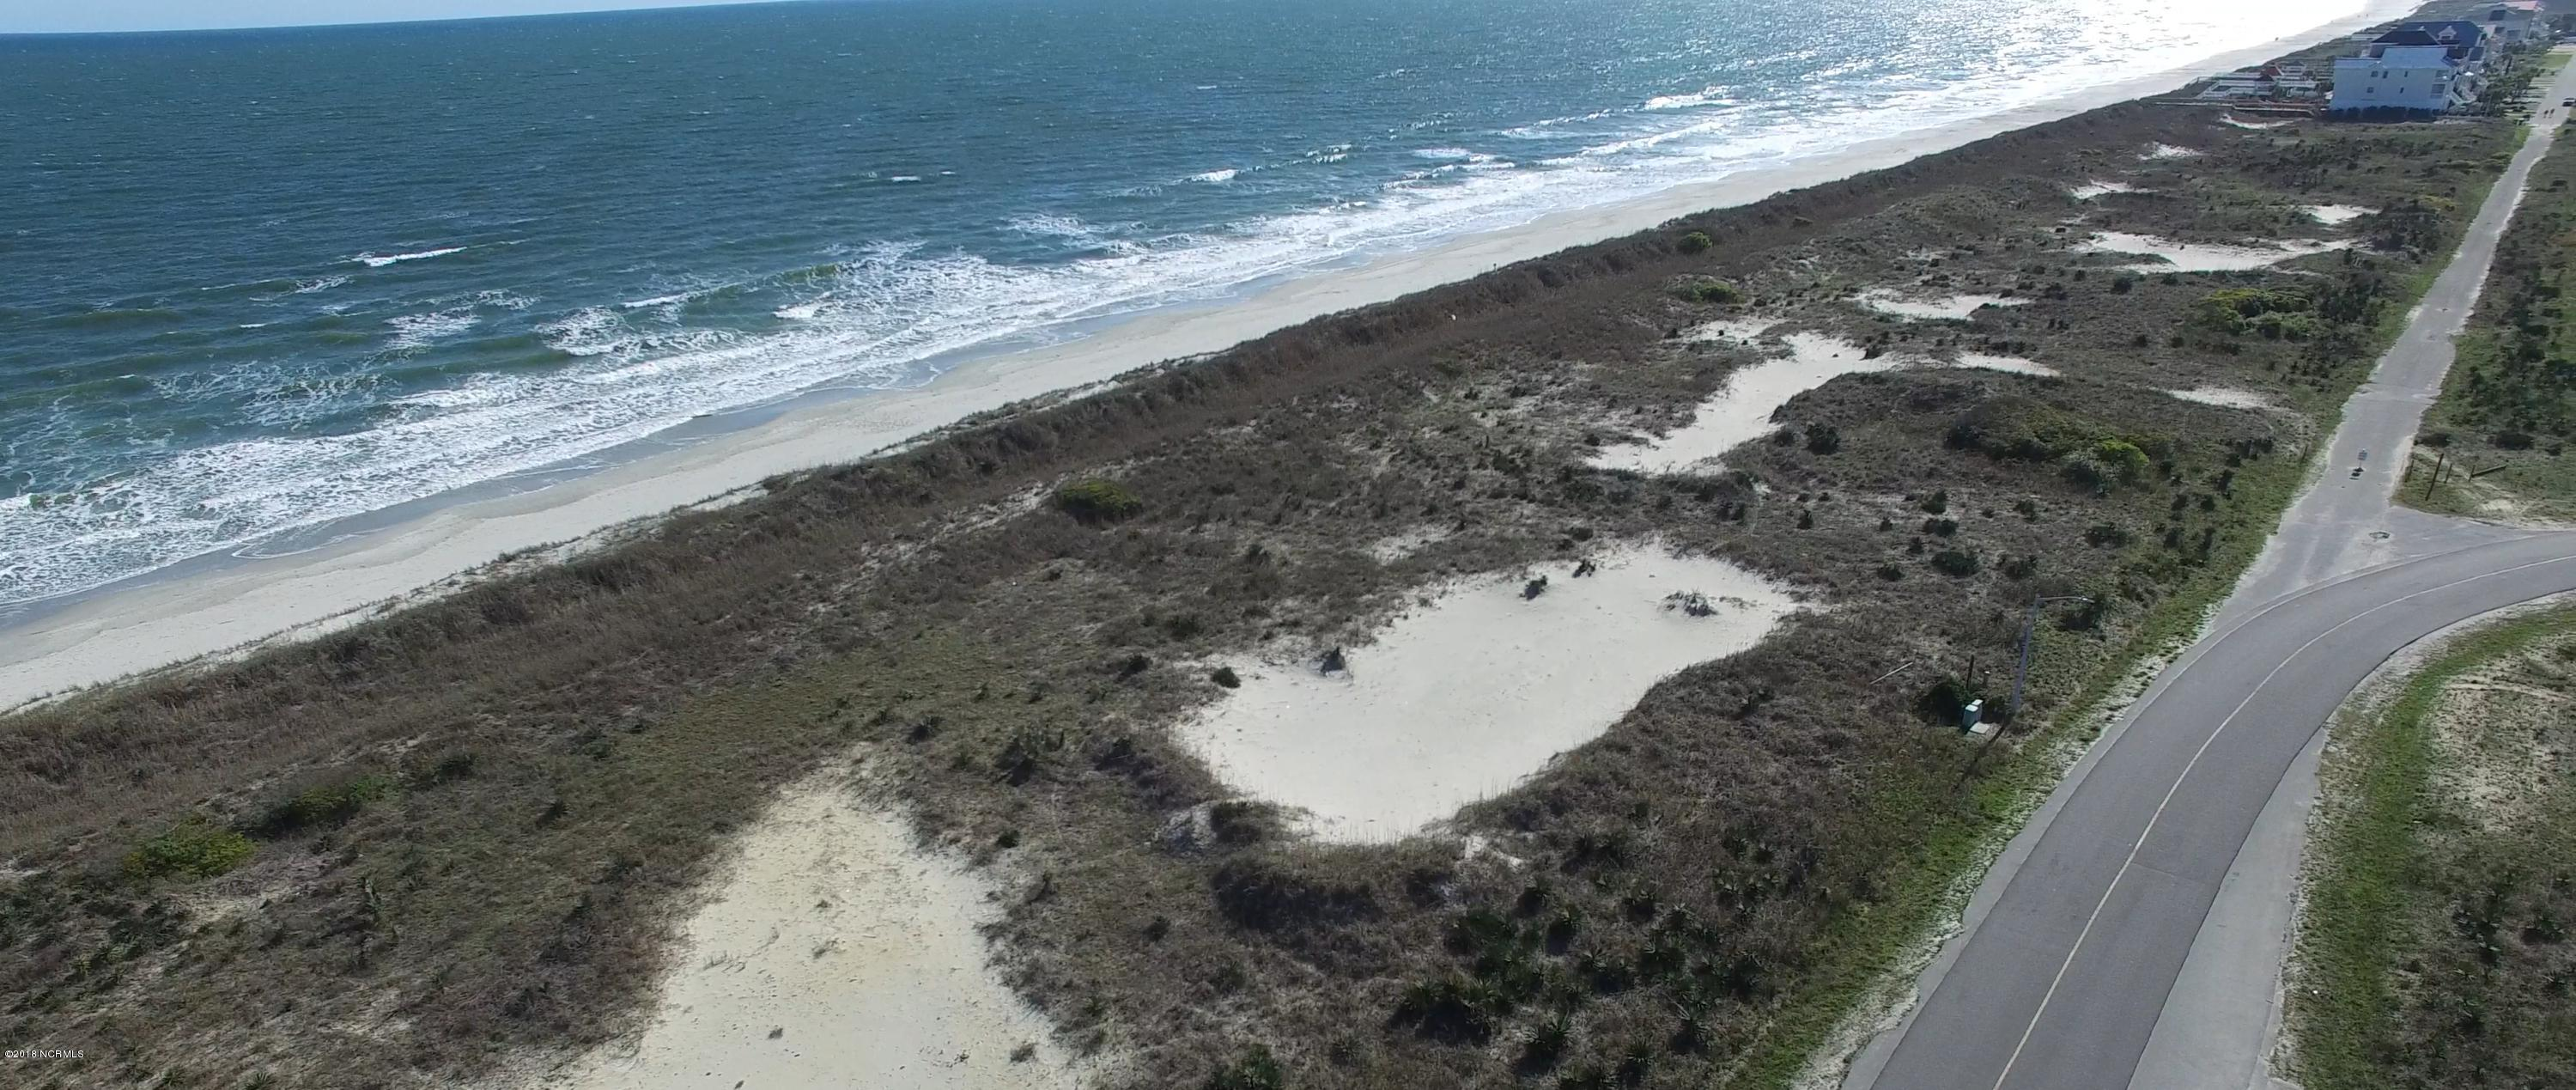 Lot 17 First Street, Ocean Isle Beach, North Carolina 28469, ,Residential land,For sale,First,100103040